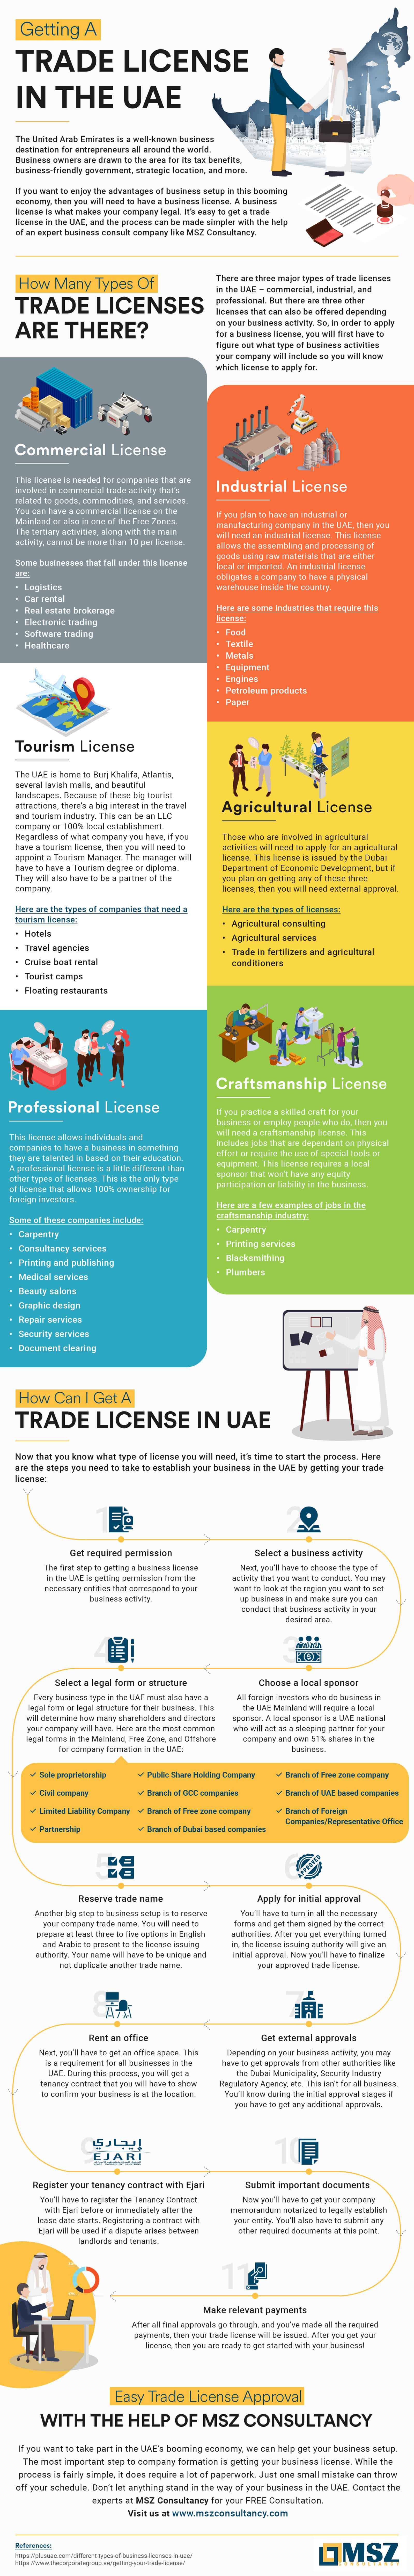 Getting-a-Trade-License-in-the-UAE